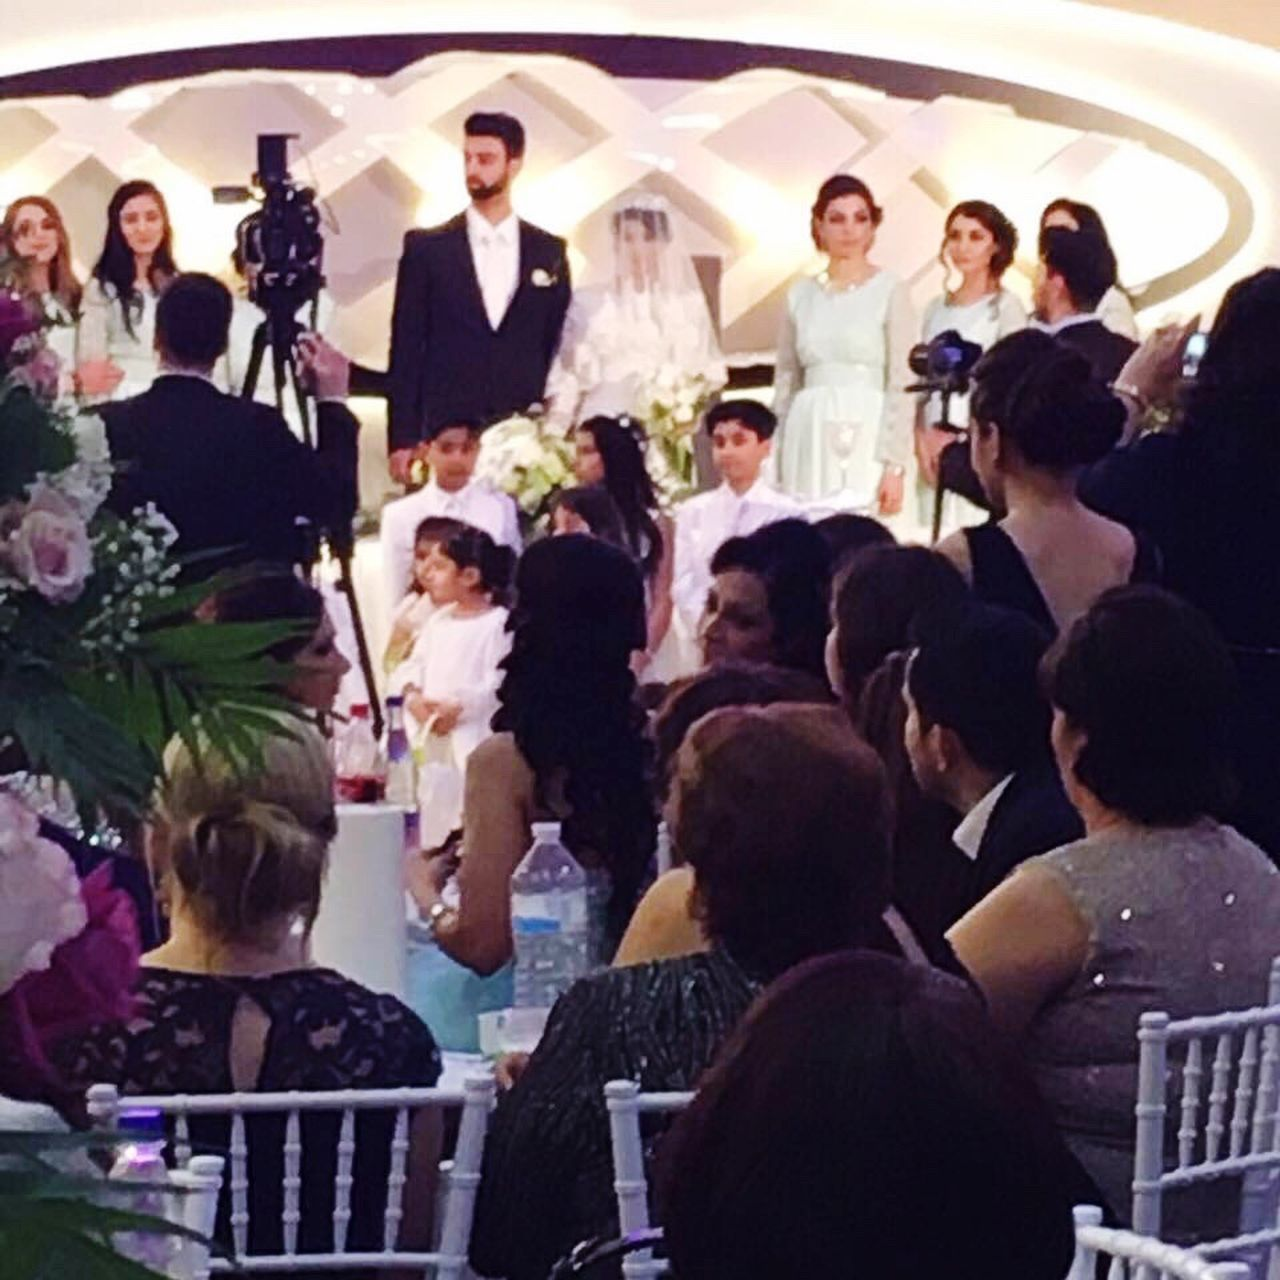 large group of people, men, women, ceremony, standing, indoors, people, well-dressed, audience, adult, bride, bridegroom, day, adults only